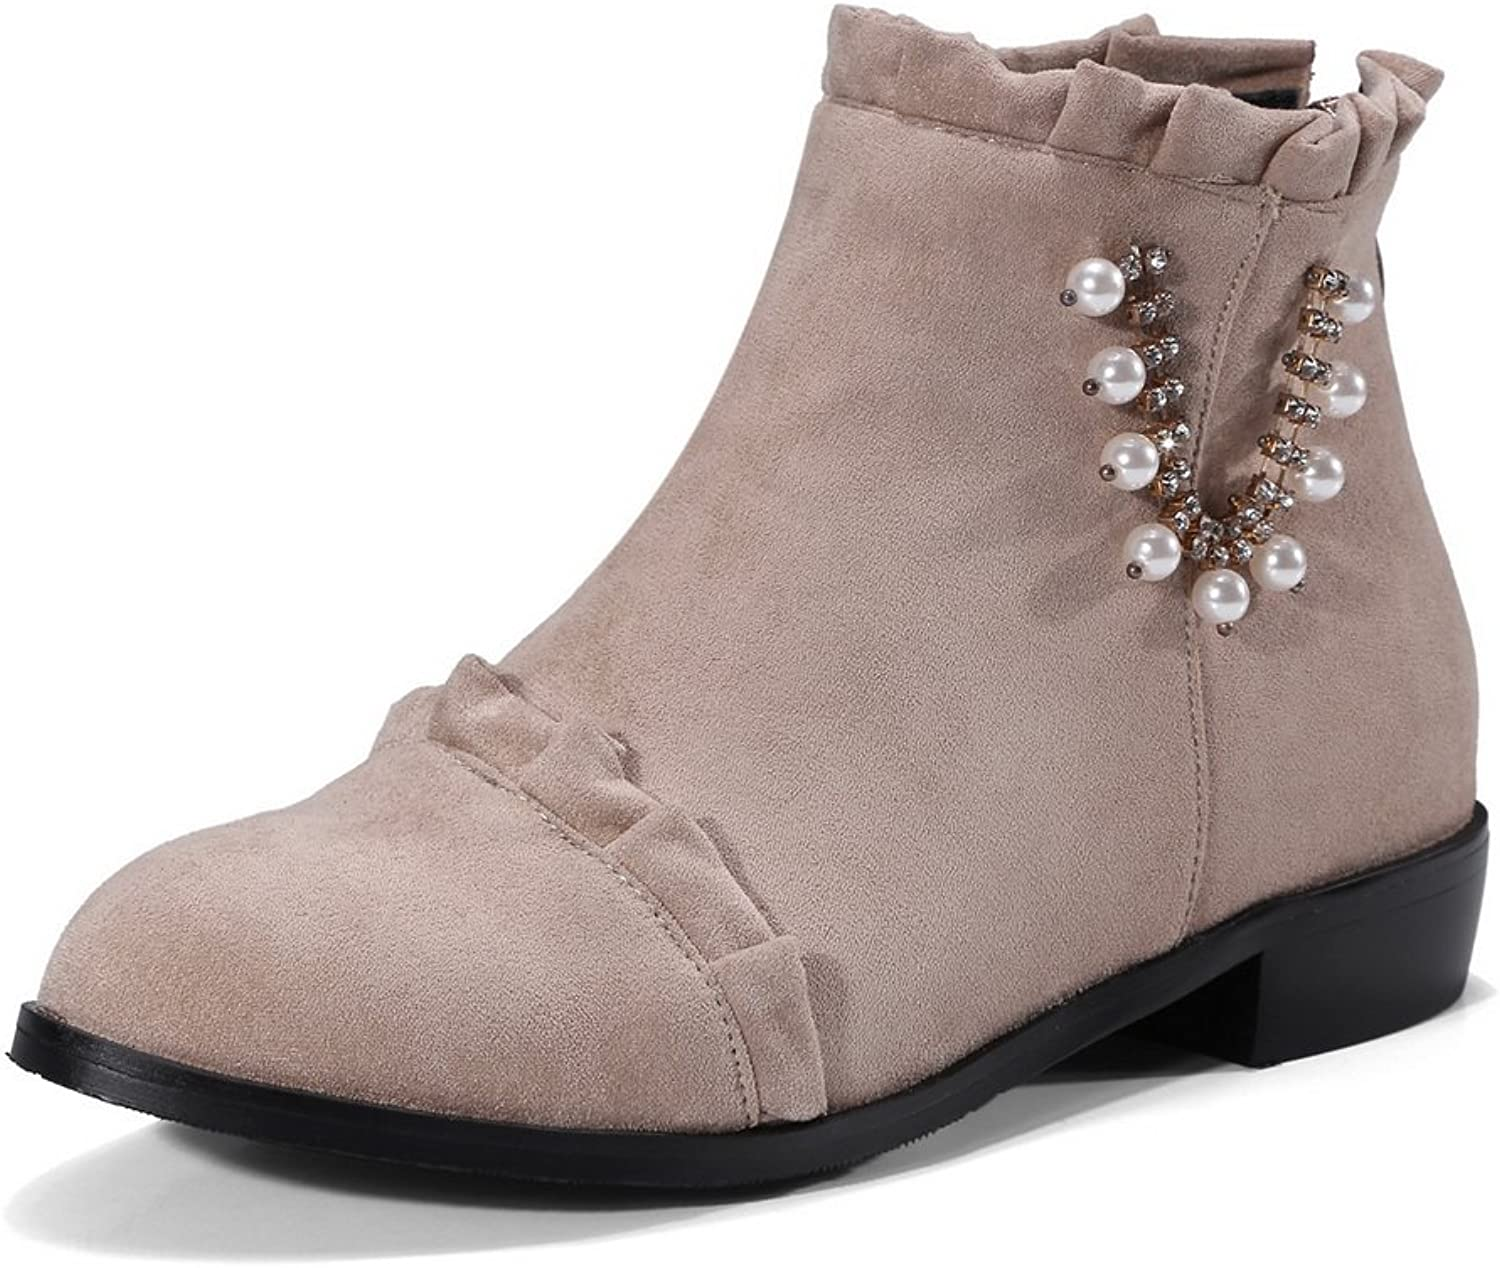 BalaMasa Womens Ankle-High Jewels Ruched Chunky Heels Suede Boots ABL10676